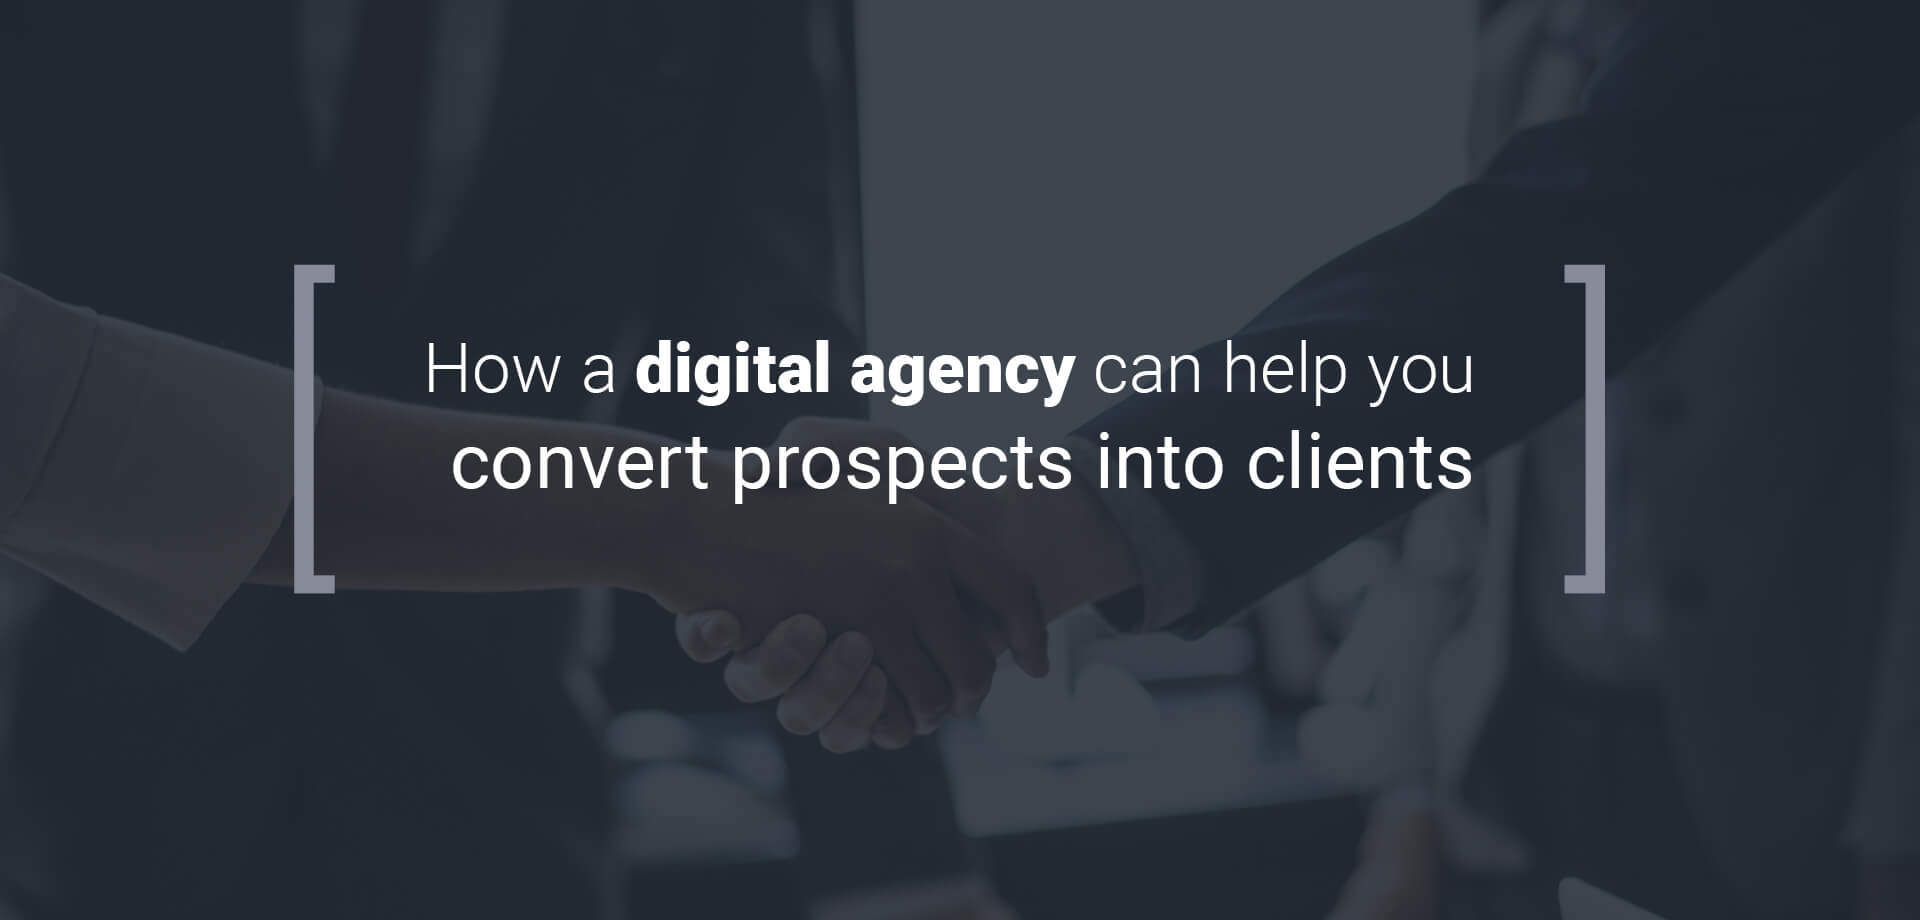 How a digital agency can help you